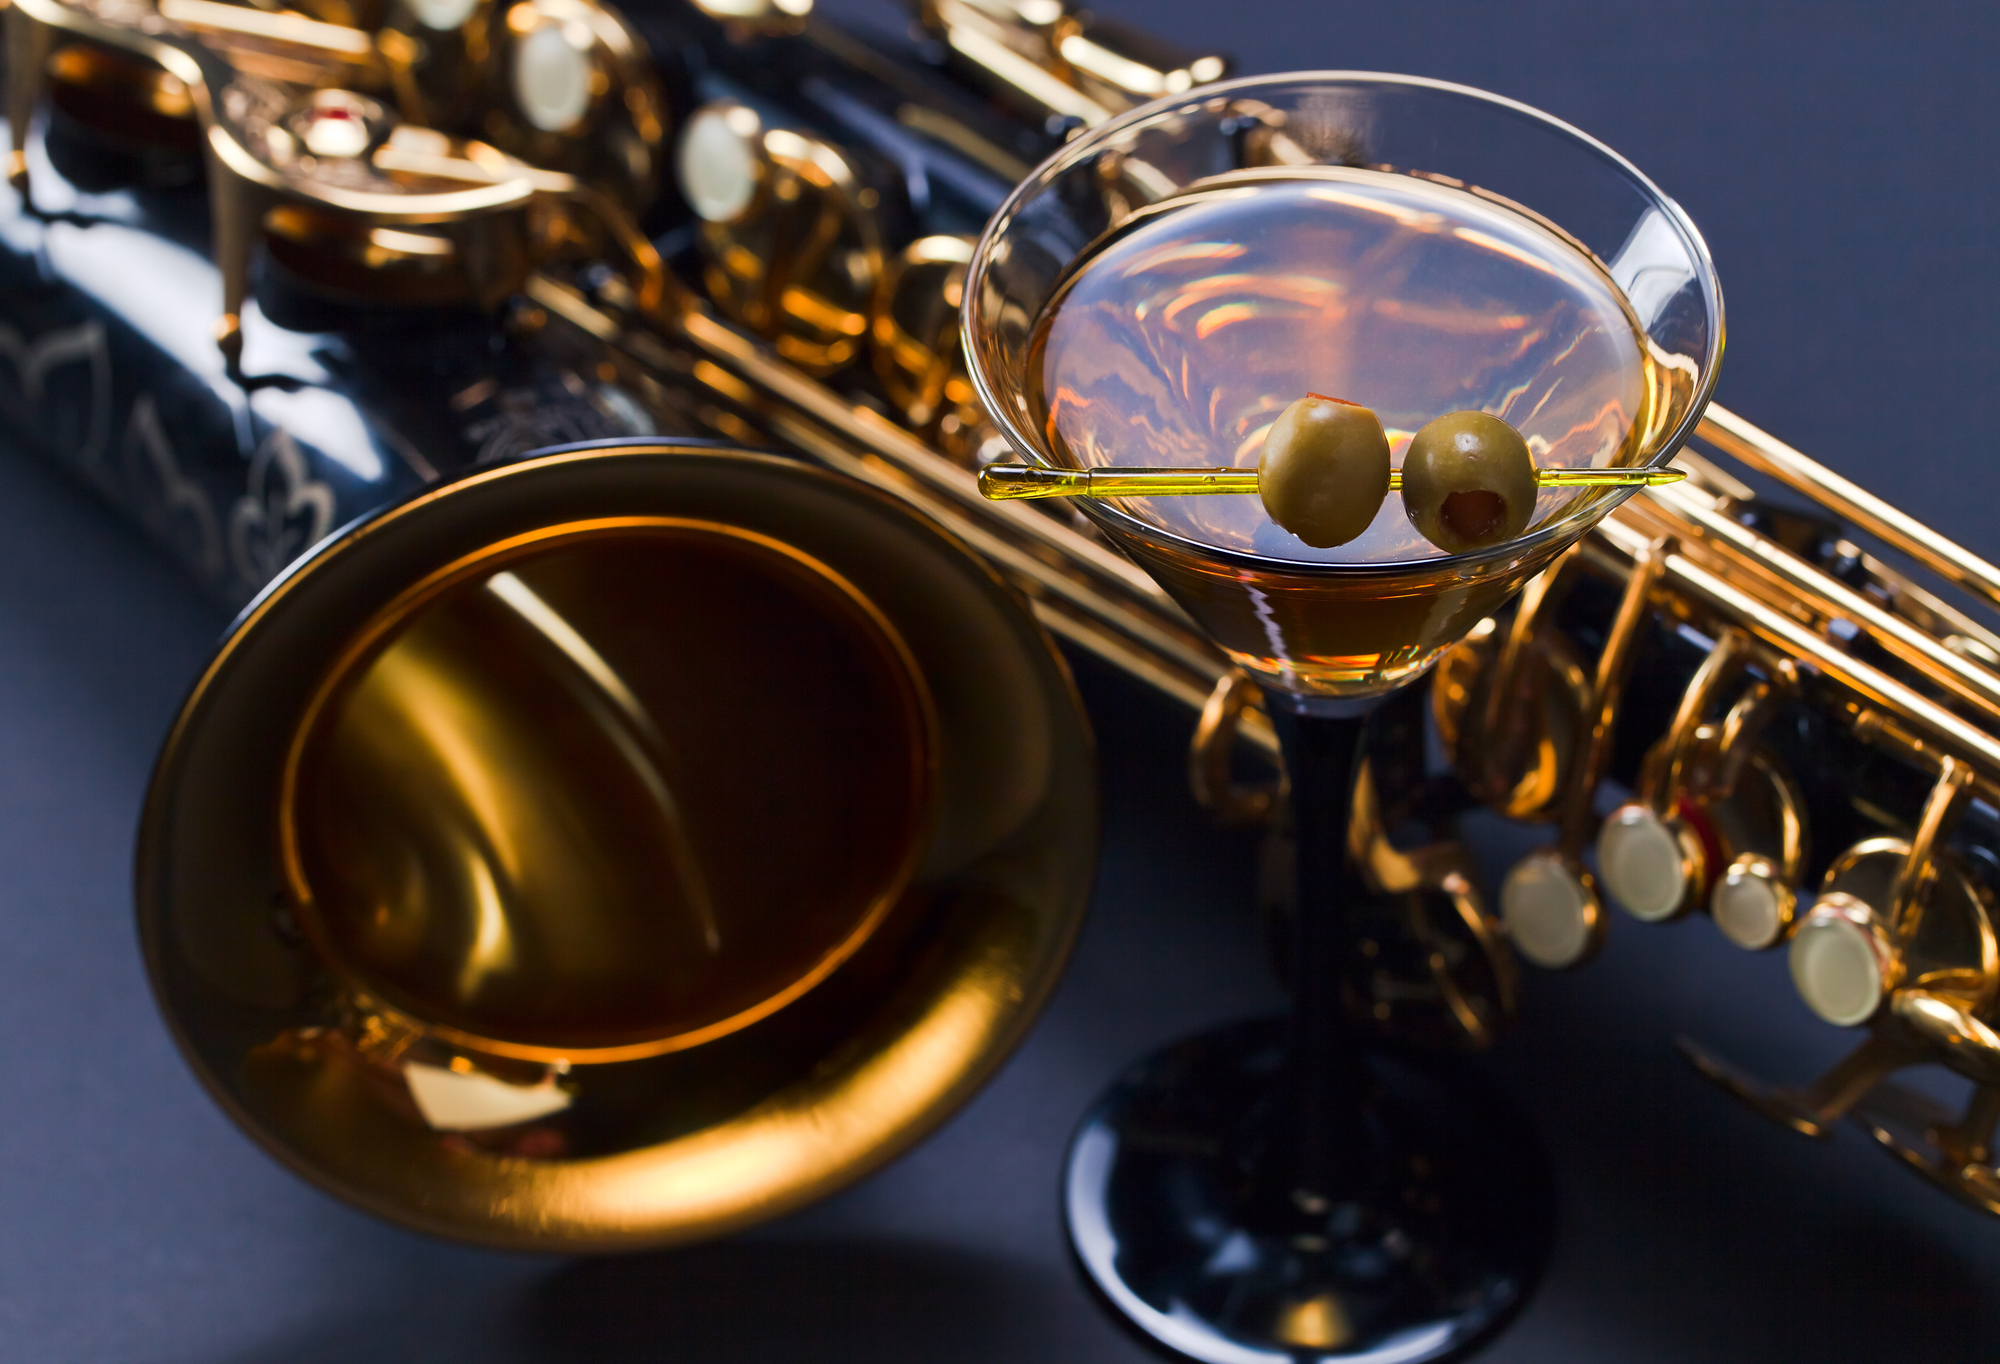 Weekend Events photo showing saxophone and a martini